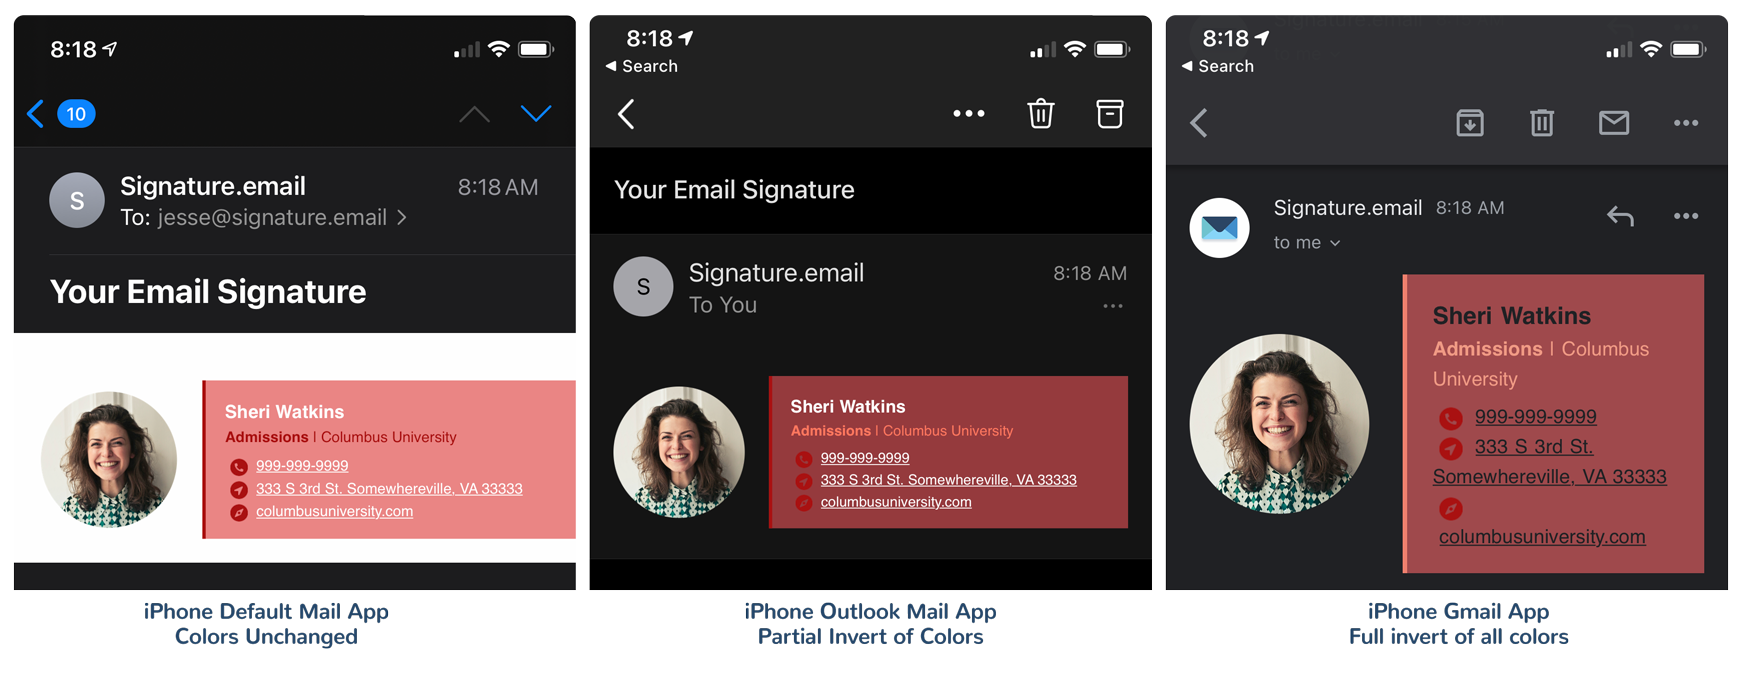 Dark Mode Colors Get Inverted In Email Signatures